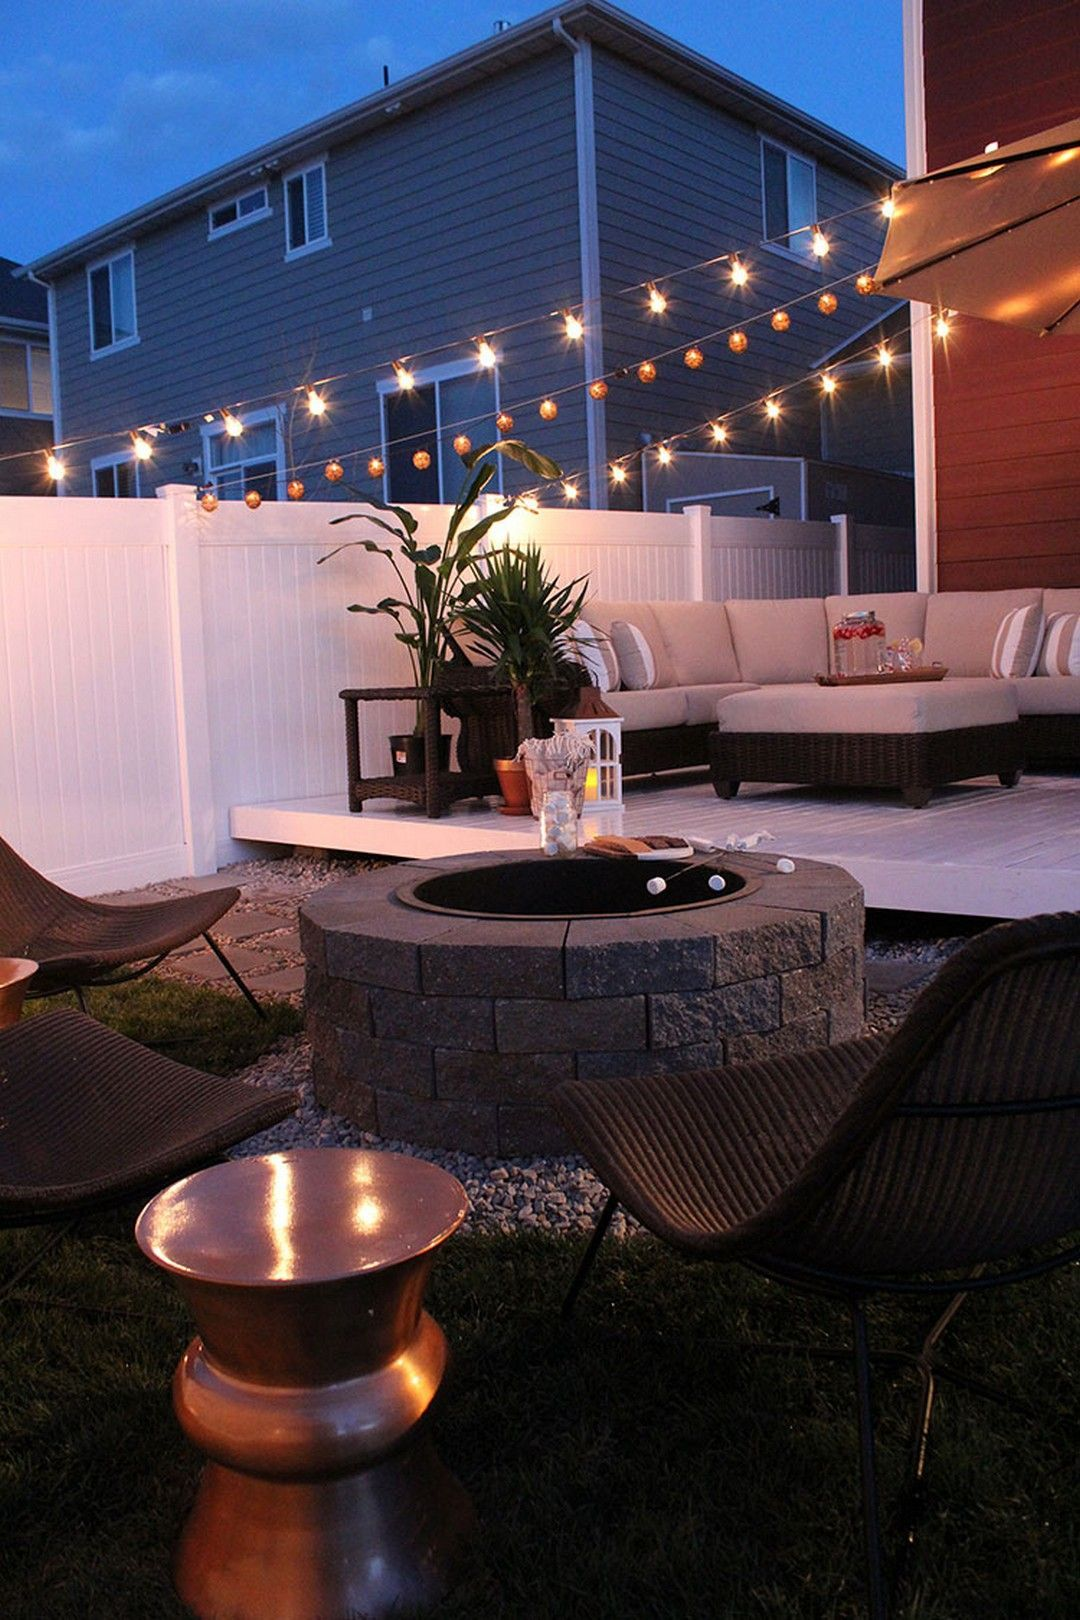 102 diy simple small backyard on a budget makeovers ideas